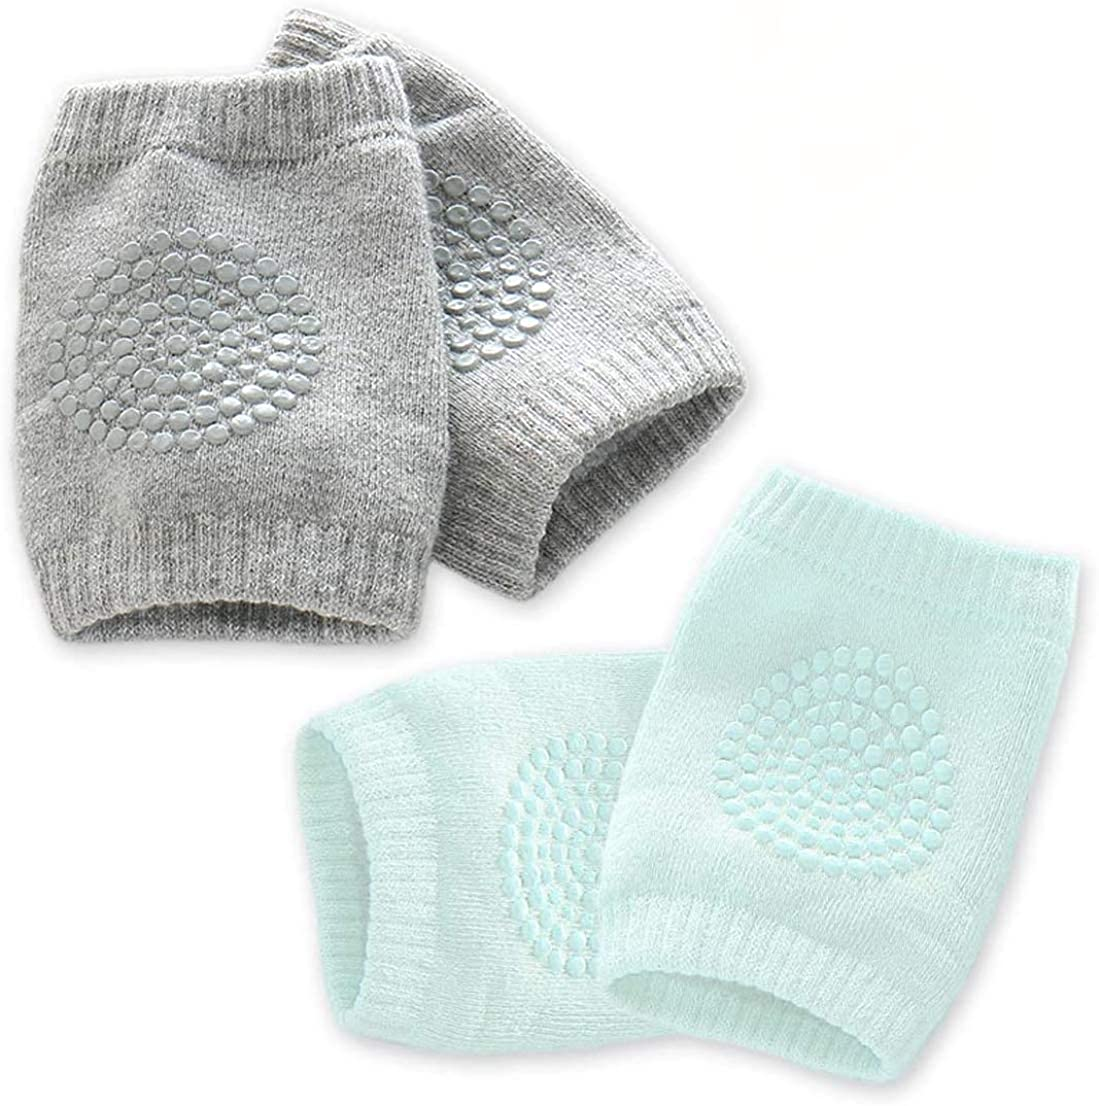 Kalevel Baby Crawling Knee Pads Anti Slip Protectors for Baby Boy Girl (2 Pairs)